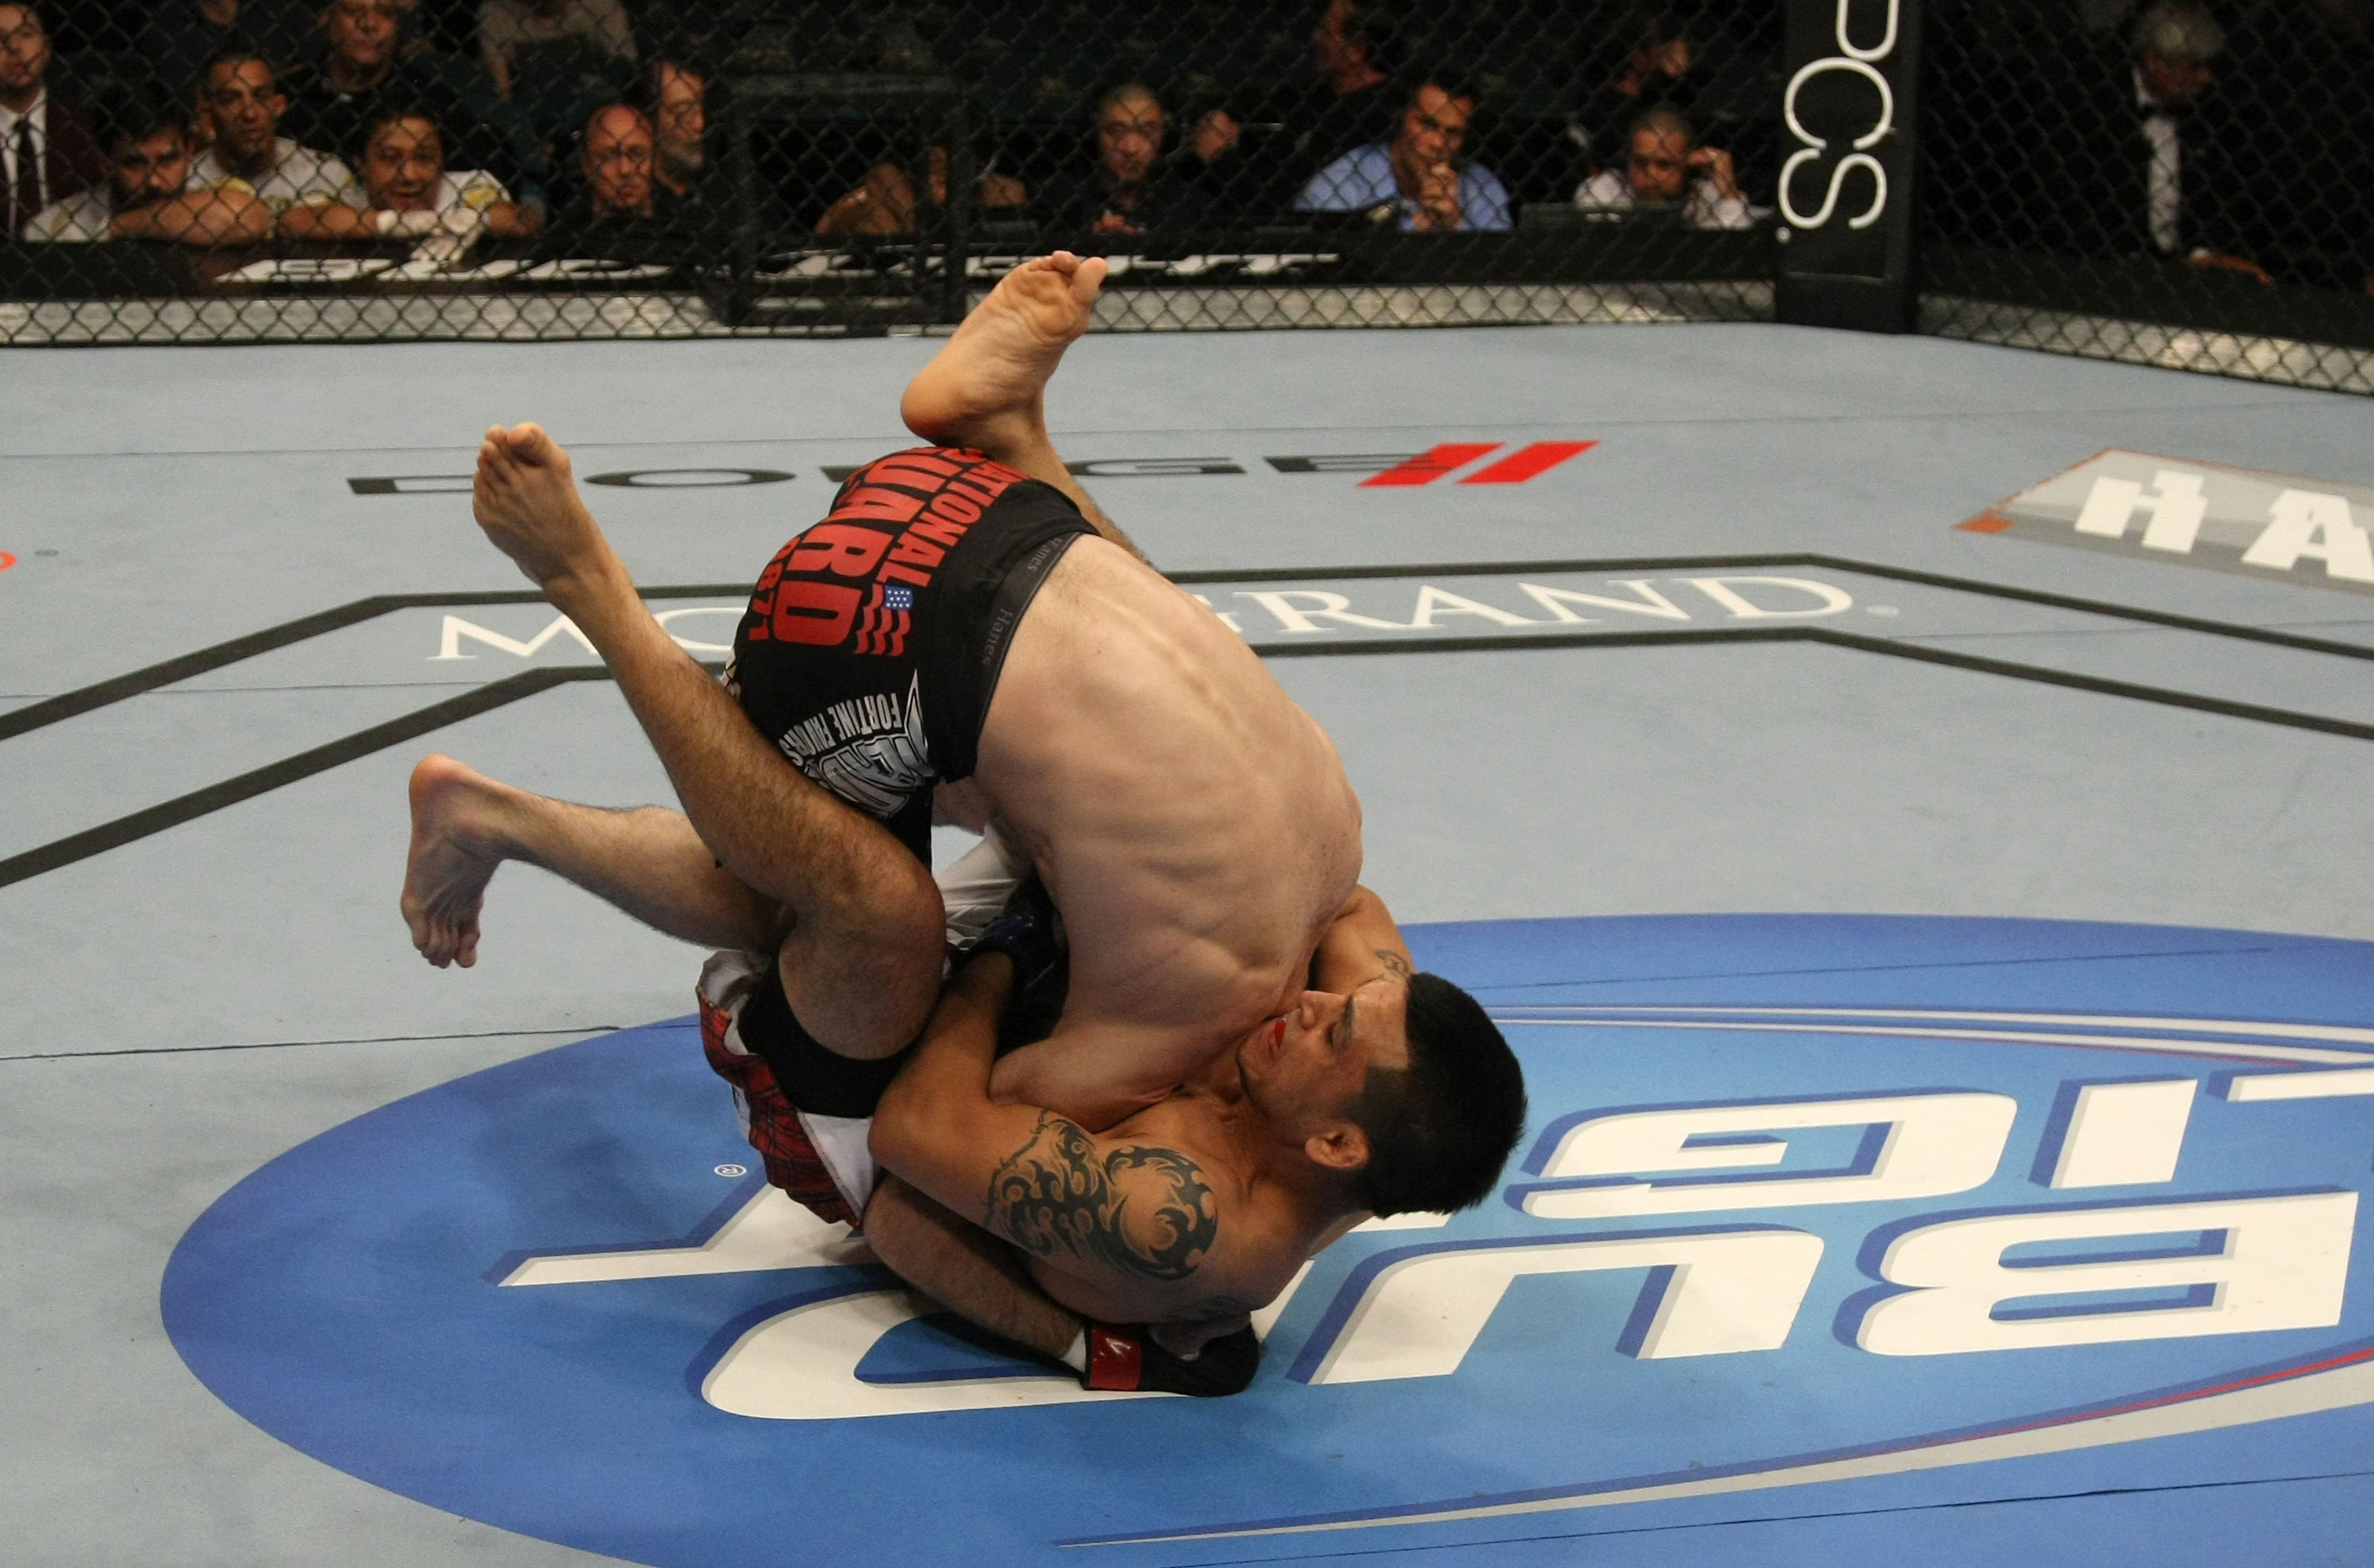 LAS VEGAS, NV - DECEMBER 30:  Efrain Escudero (bottom) attempts to submit Jacob Volkmann during the UFC 141 event at the MGM Grand Garden Arena on December 30, 2011 in Las Vegas, Nevada.  (Photo by Donald Miralle/Zuffa LLC/Zuffa LLC via Getty Images) *** Local Caption *** Efrain Escudero; Jacob Volkmann